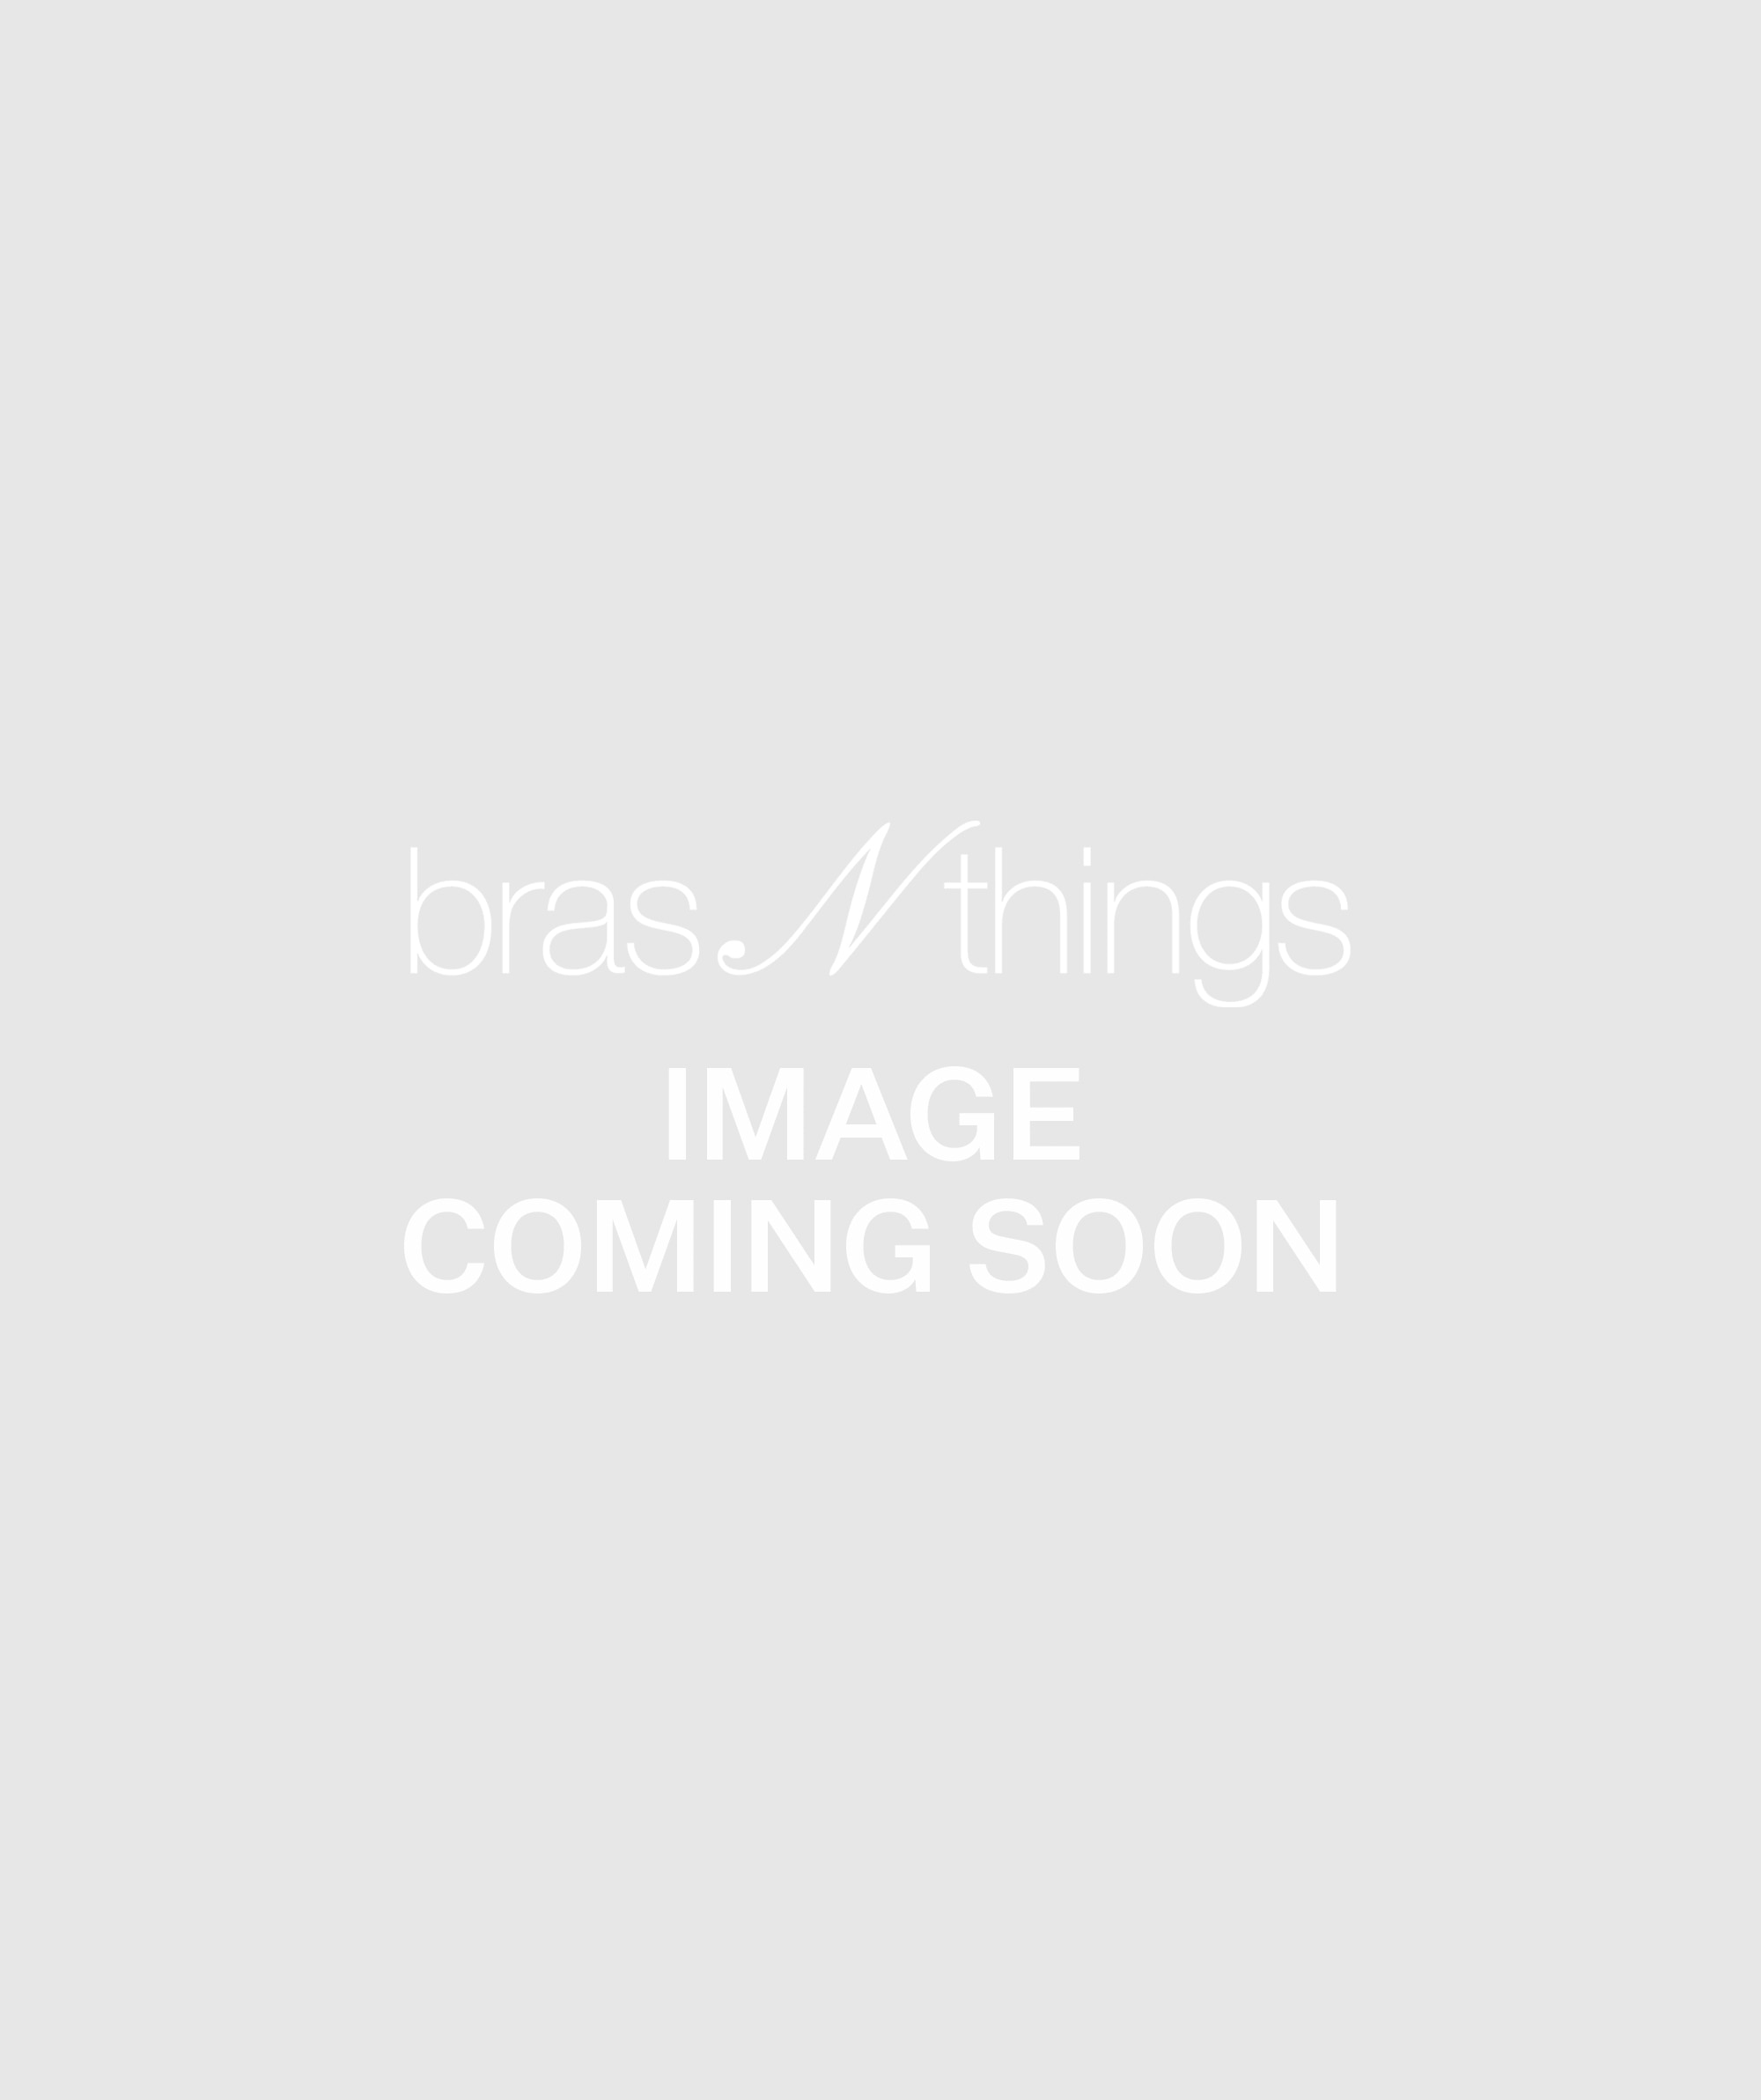 Body Bliss Full Figure Bra - Black